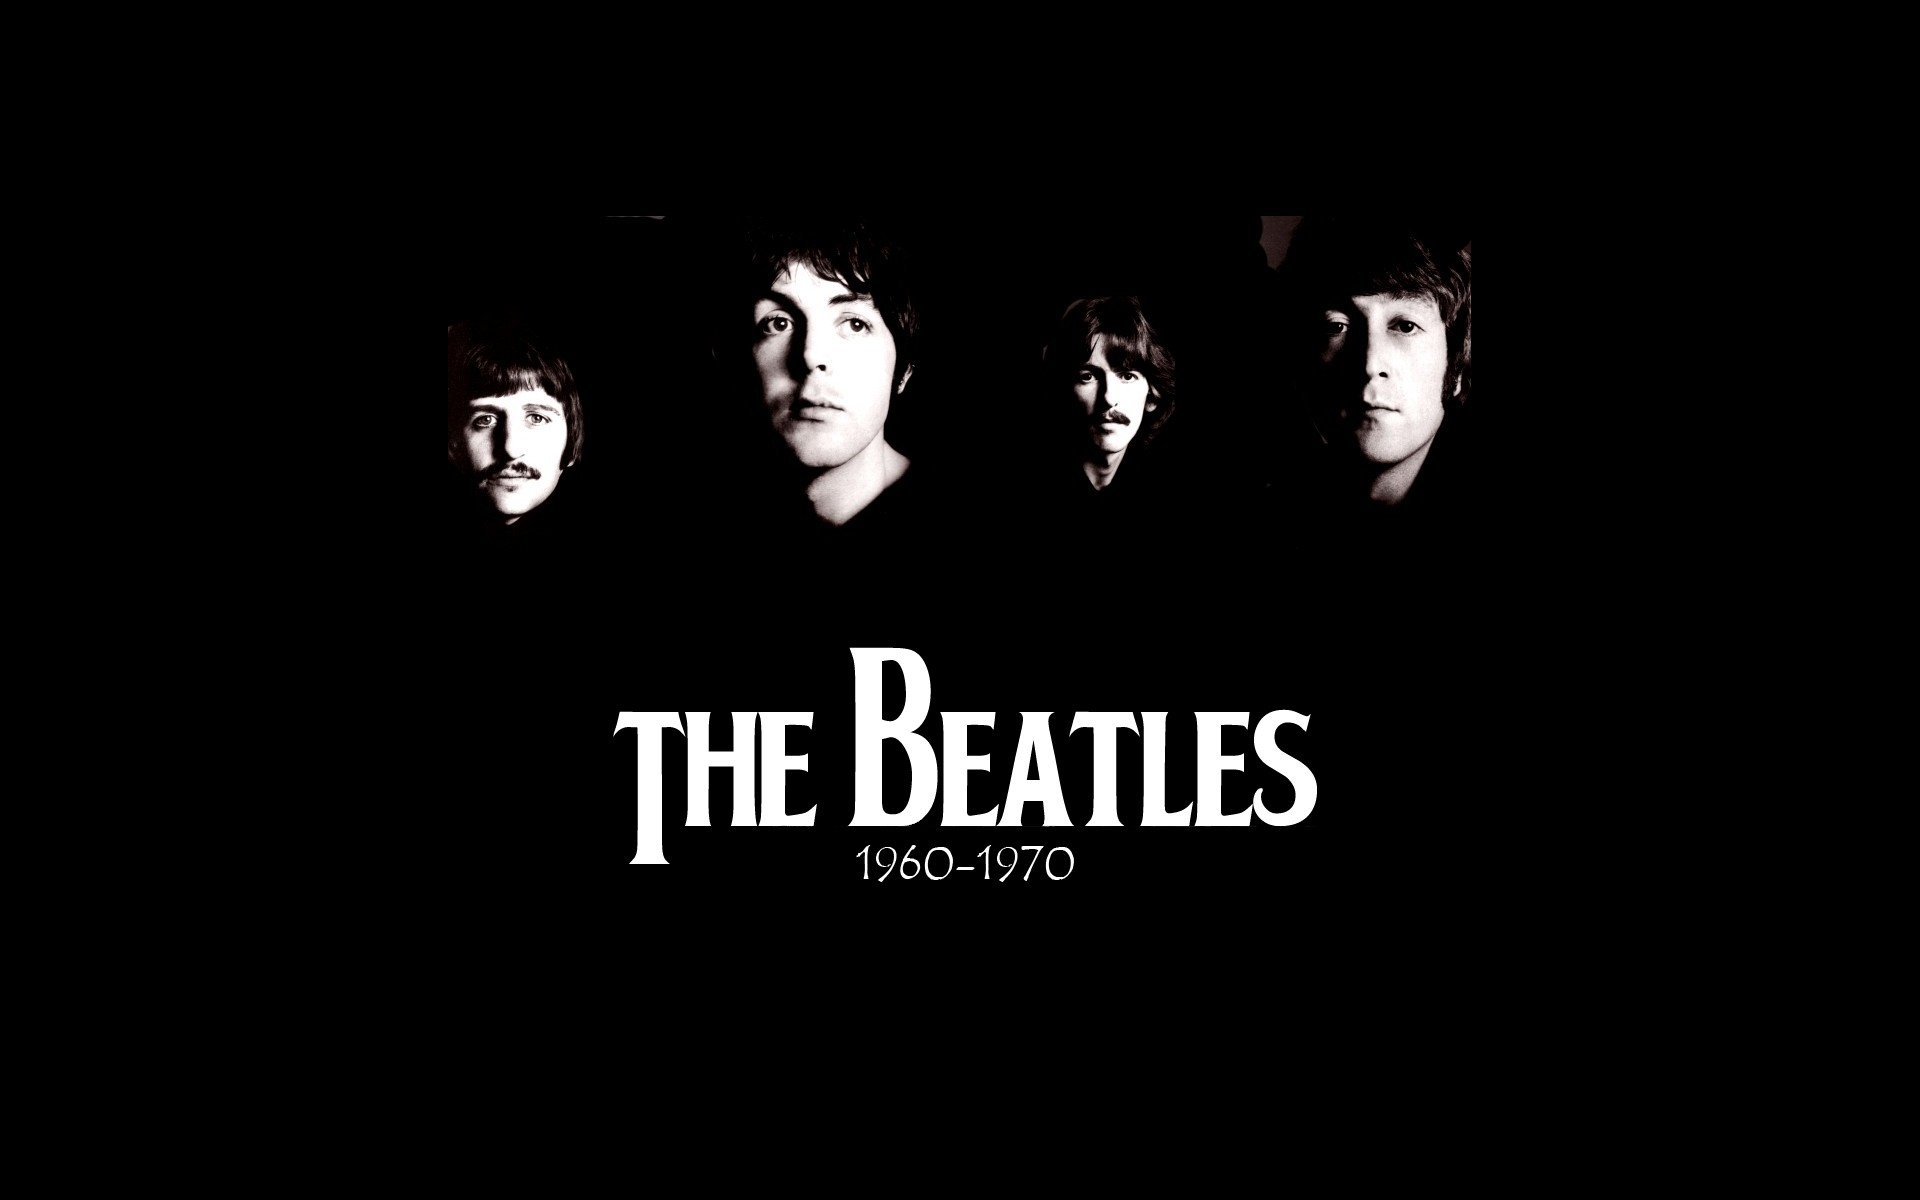 The Beatles Wallpaper 1 Download Free Cool HD Backgrounds For